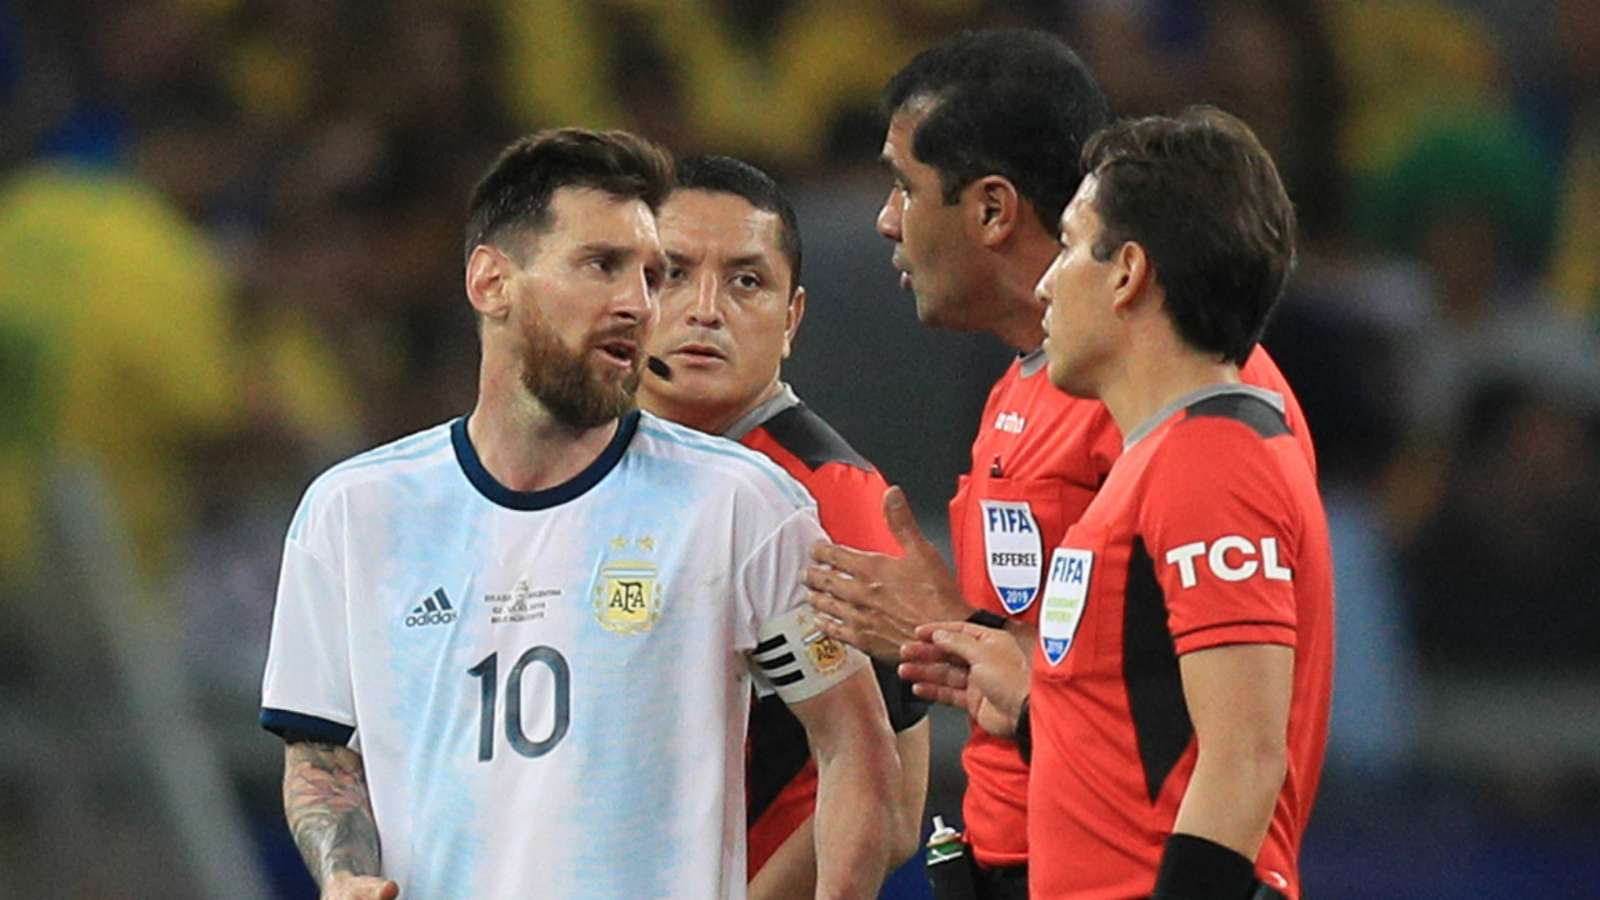 'It was bullsh*t!' - Messi accuses referees of favouring Brazil in Argentina's Copa America semi-final defeat - Bóng Đá